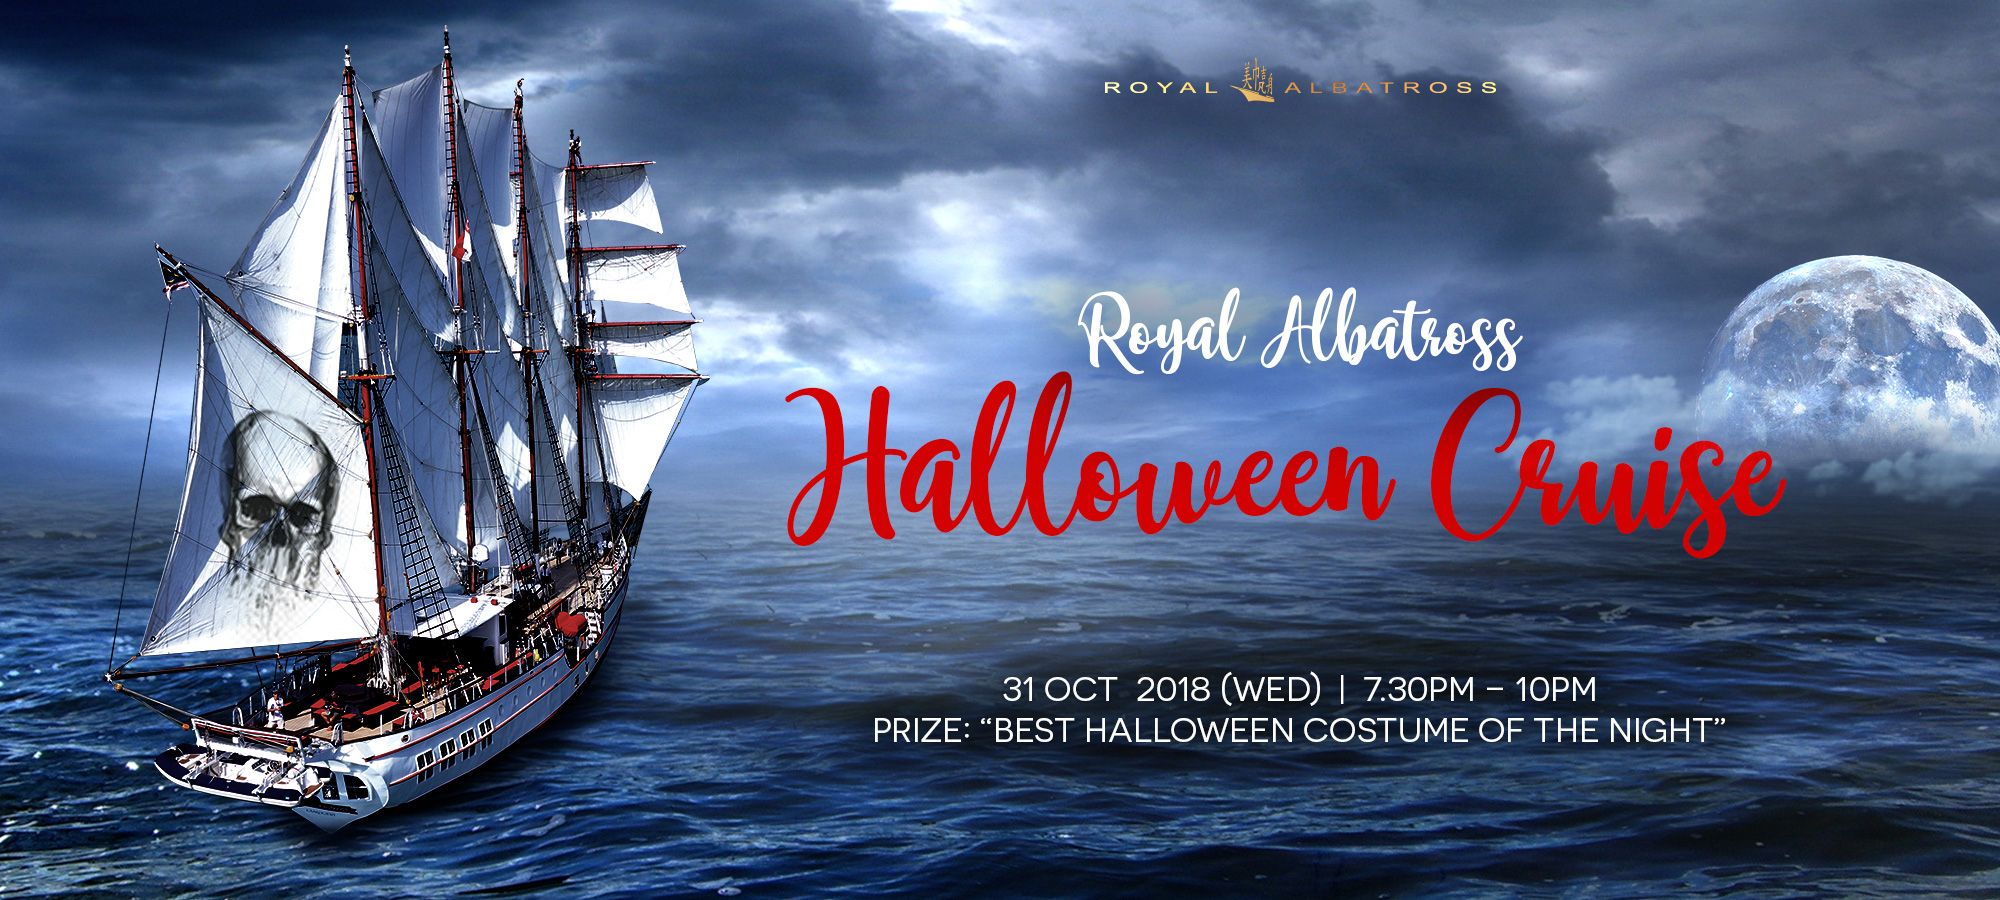 ROYAL ALBATROSS HALLOWEEN CRUISE